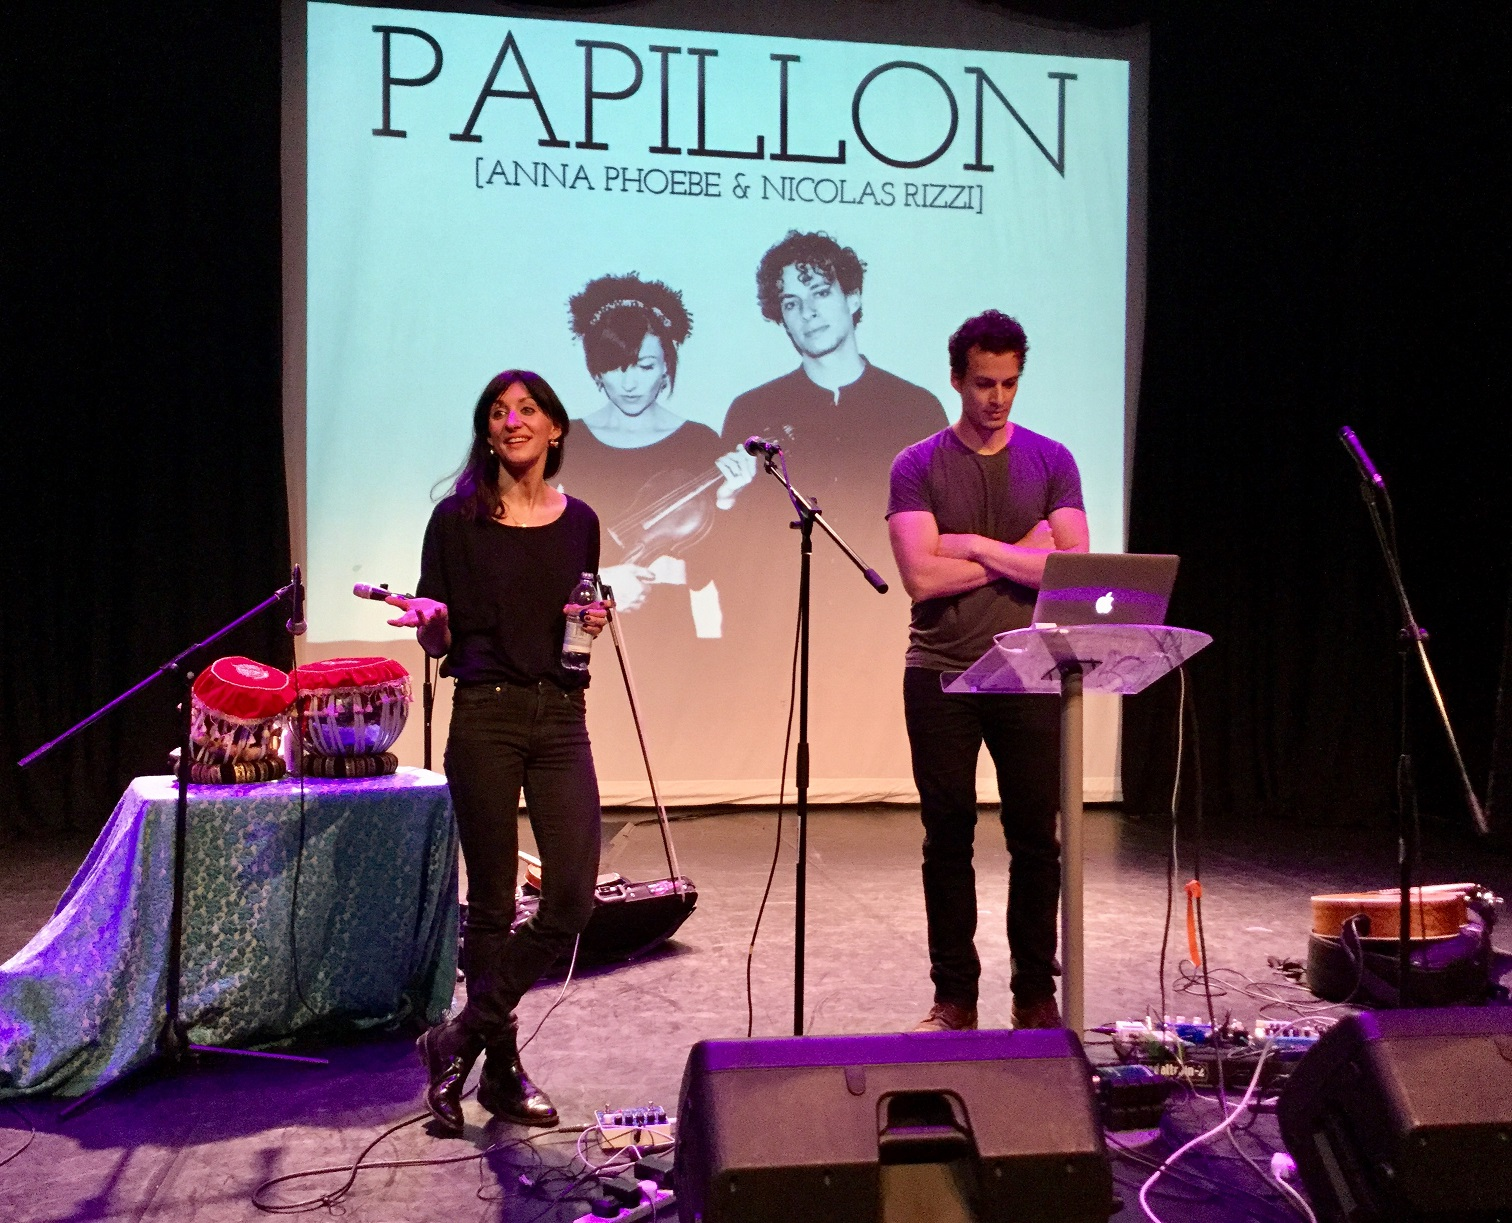 The Visit of Papillon